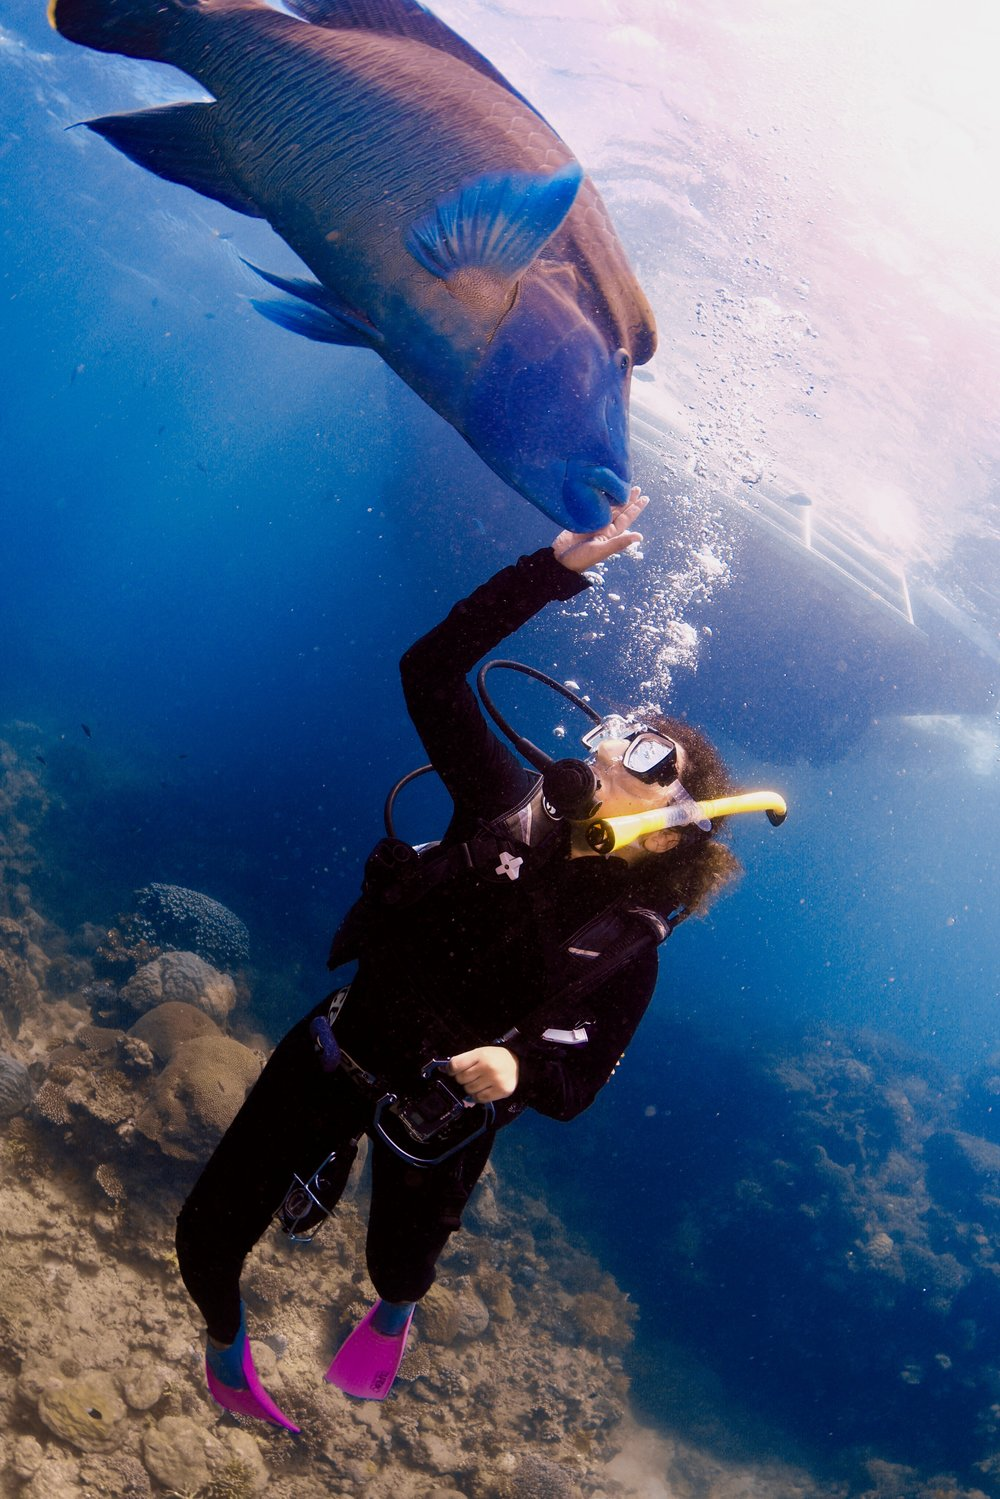 This is me and Wally. We met at the Great Barrier Reef. He left me shortly thereafter. I may never love again.